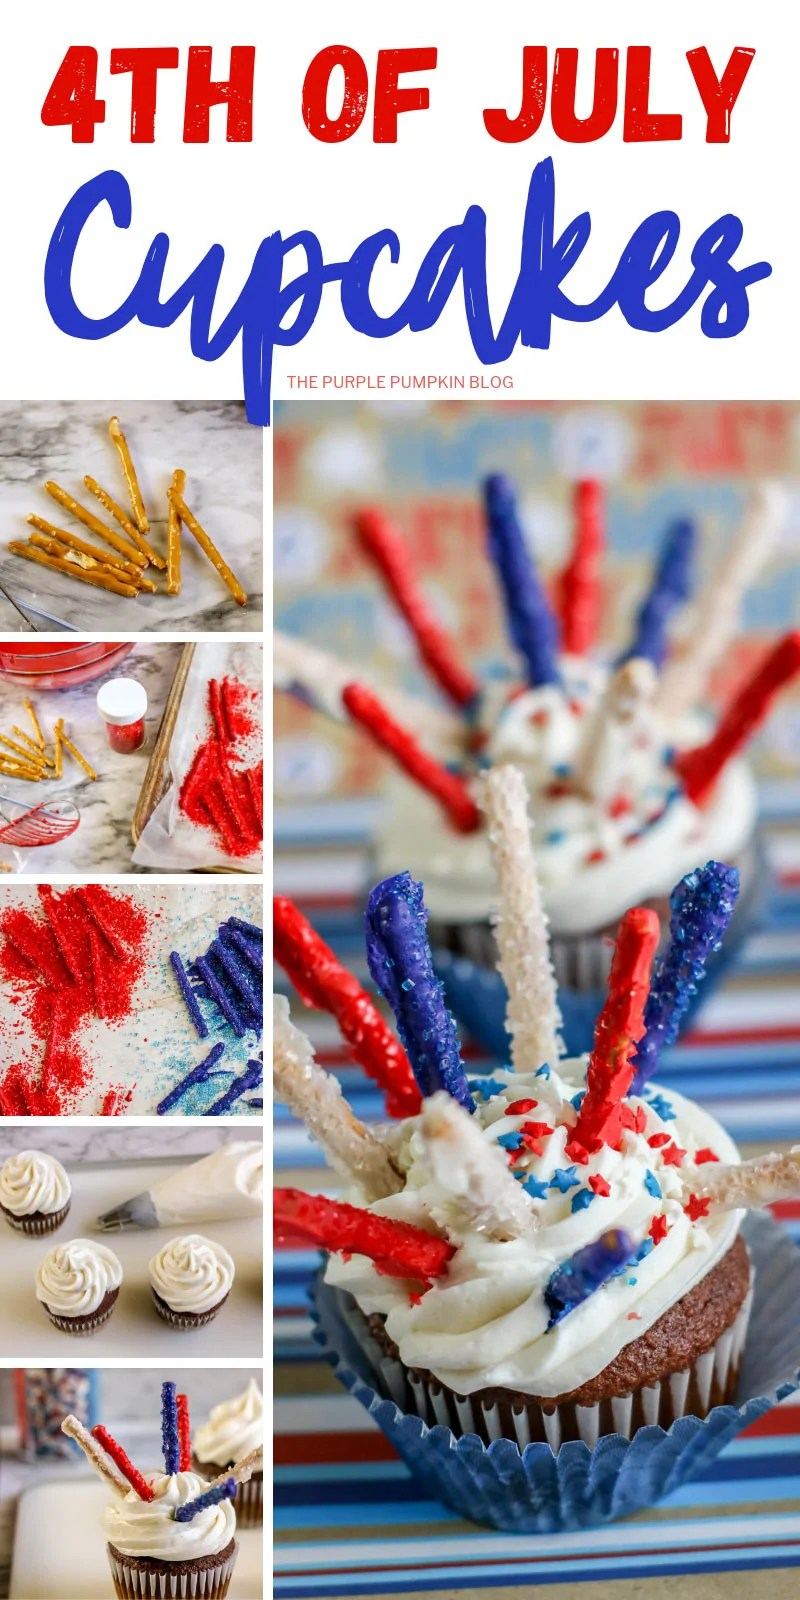 A collage of steps demonstrating how to make red white and blue fireworks cupcakes